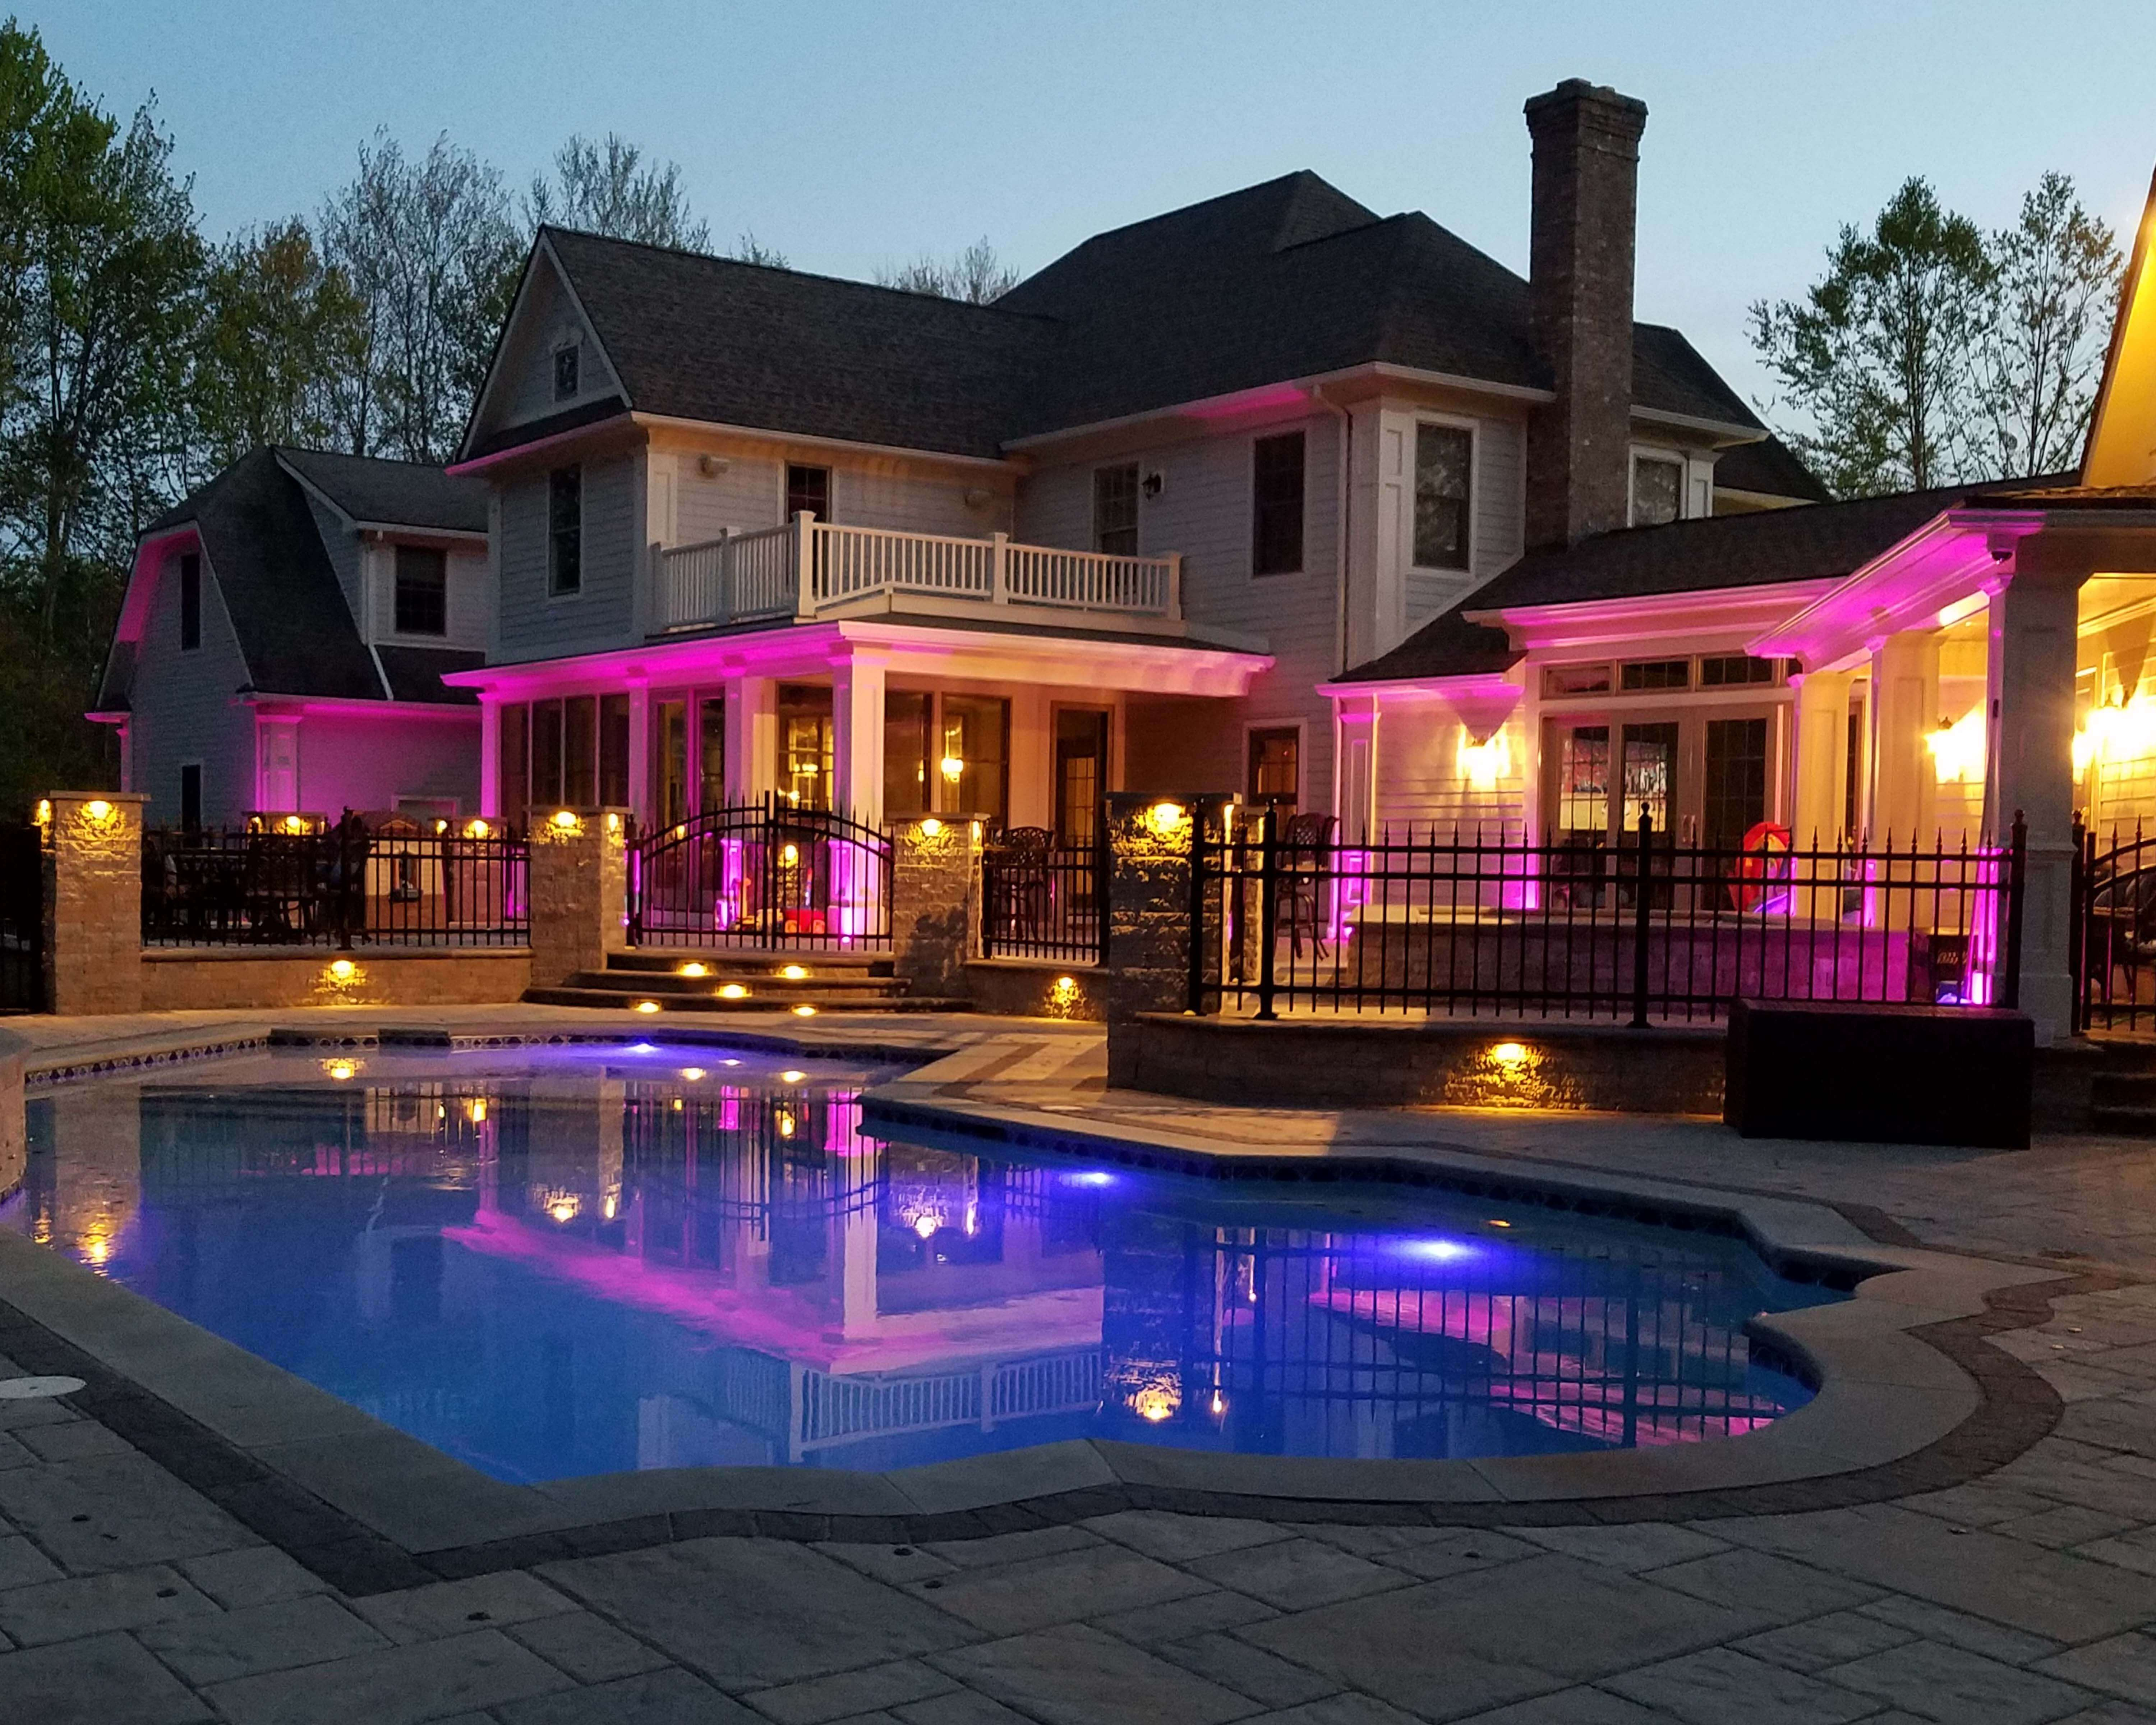 Landscape Lighting: 10 Ways it Can Upgrade Your Outdoor Space